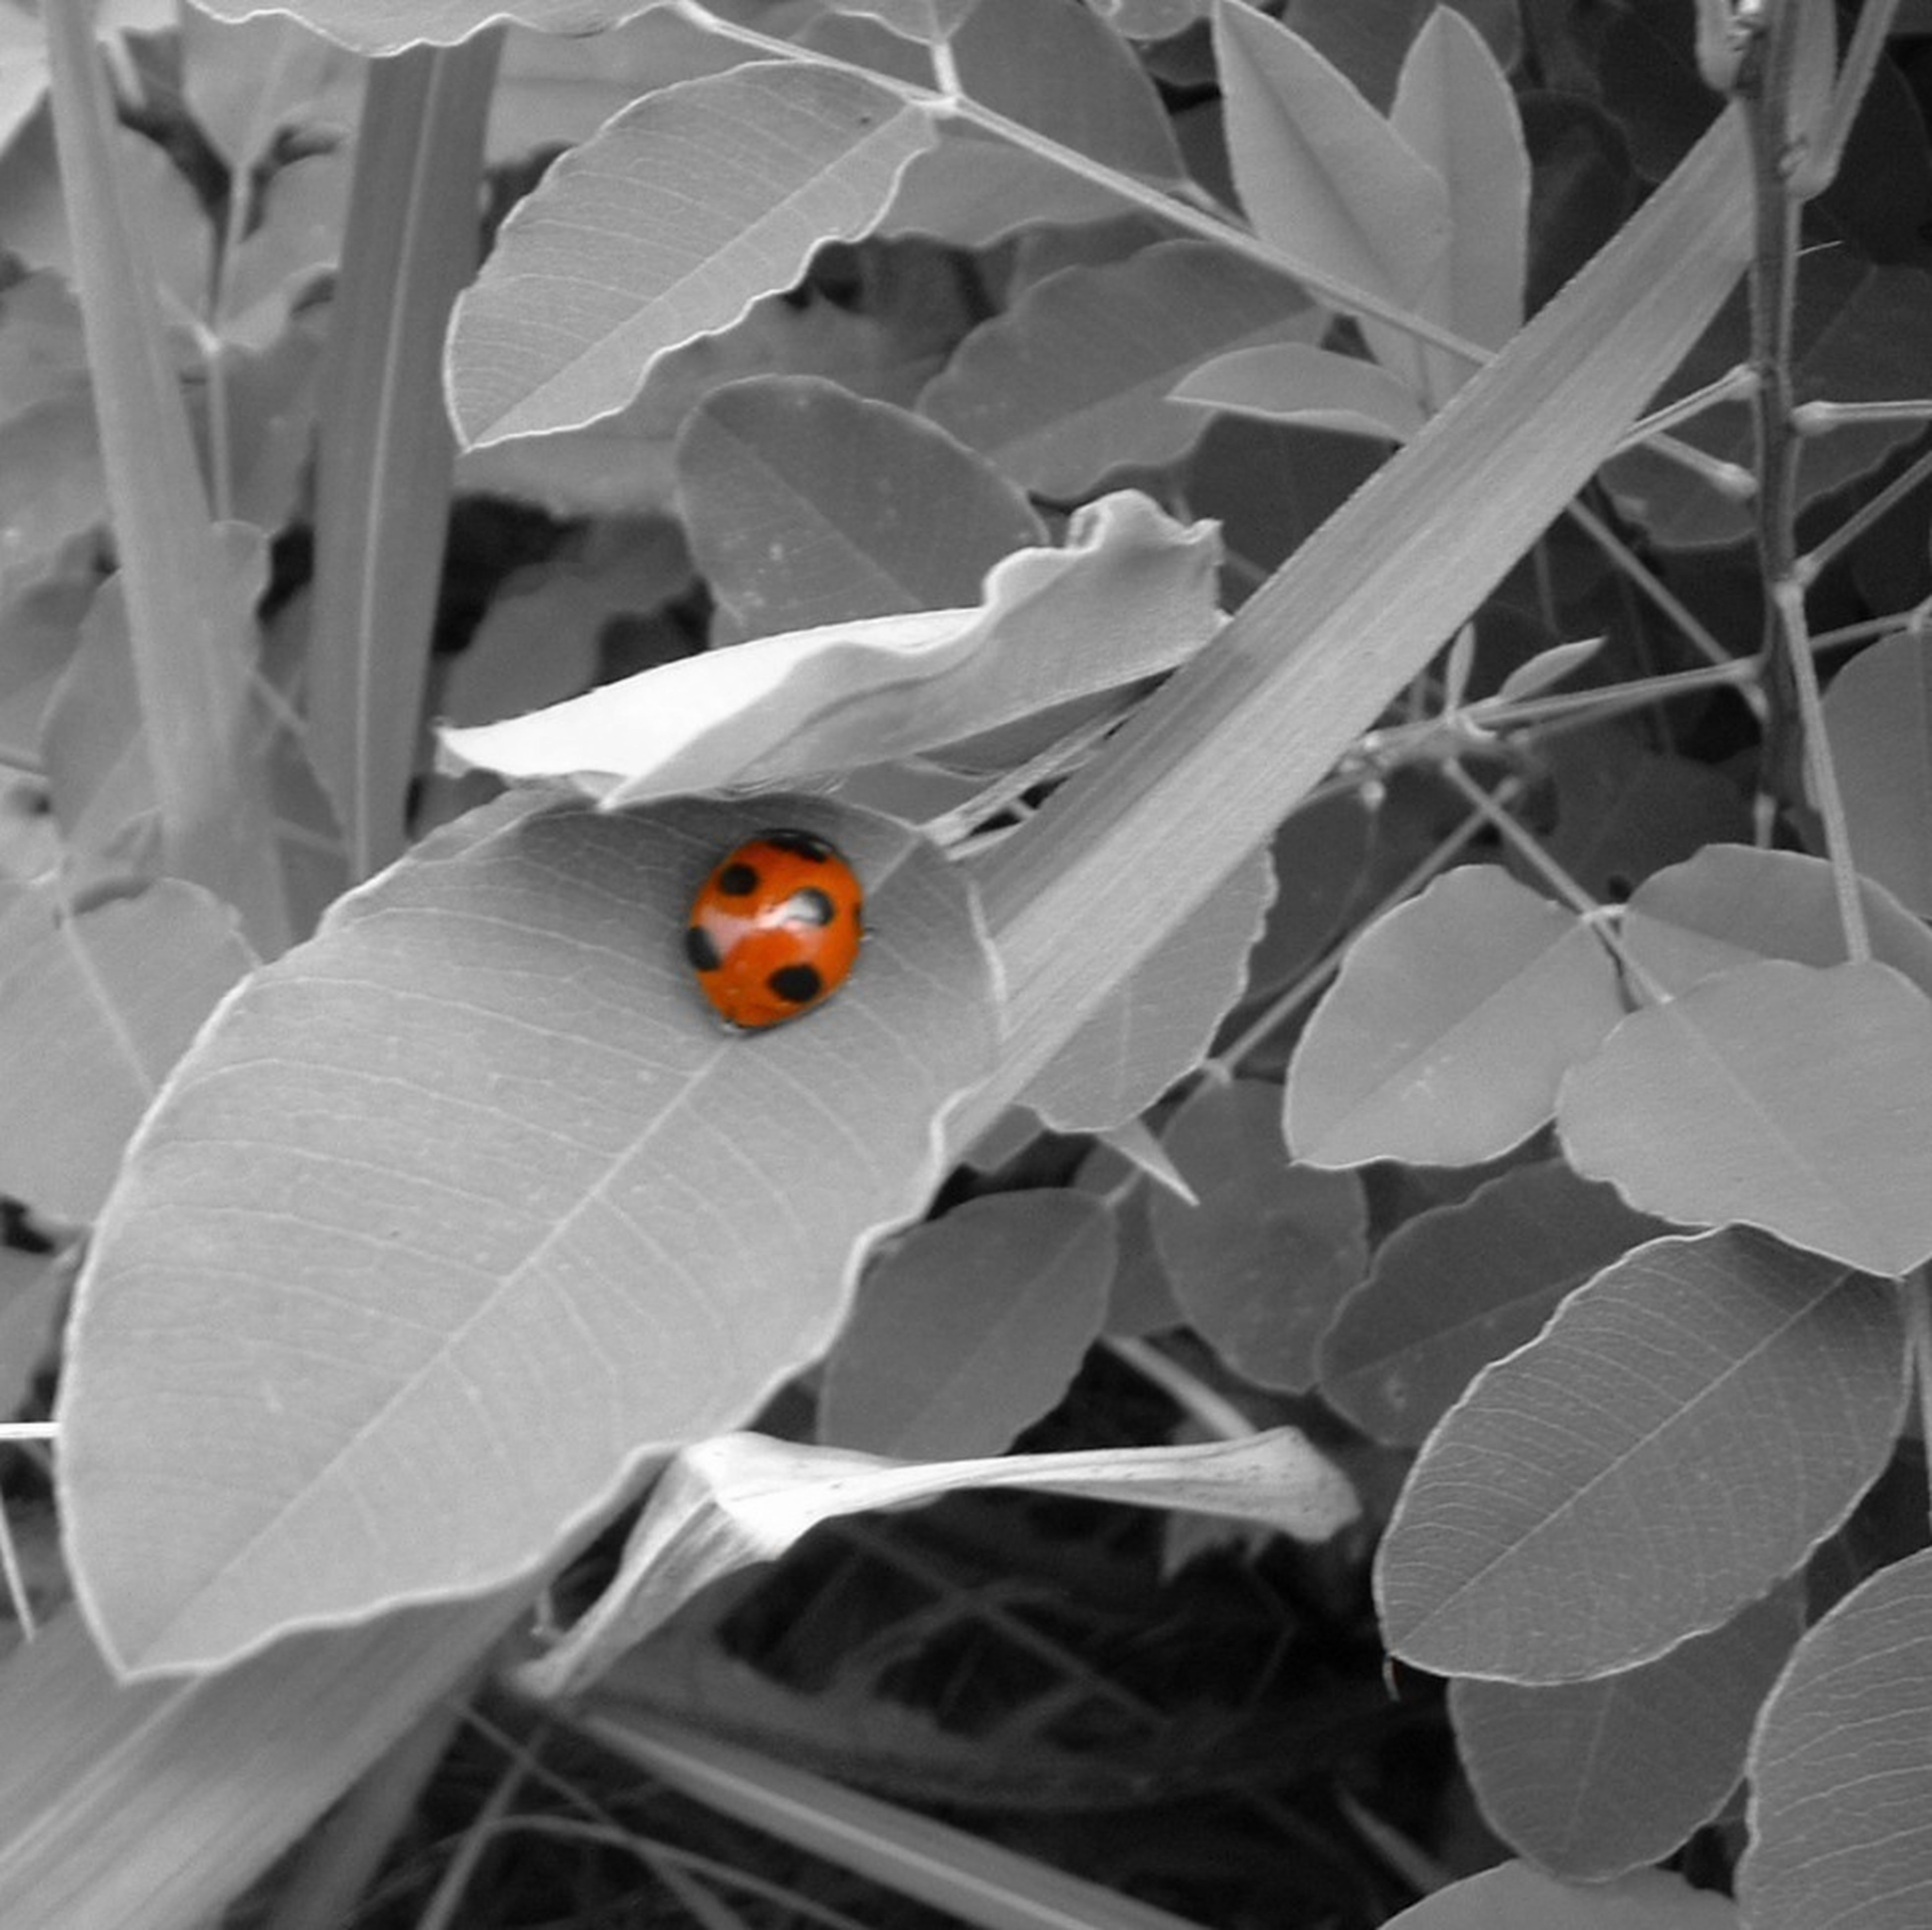 animal themes, one animal, insect, animals in the wild, wildlife, leaf, ladybug, close-up, nature, plant, butterfly - insect, perching, high angle view, orange color, beauty in nature, fragility, growth, butterfly, selective focus, outdoors